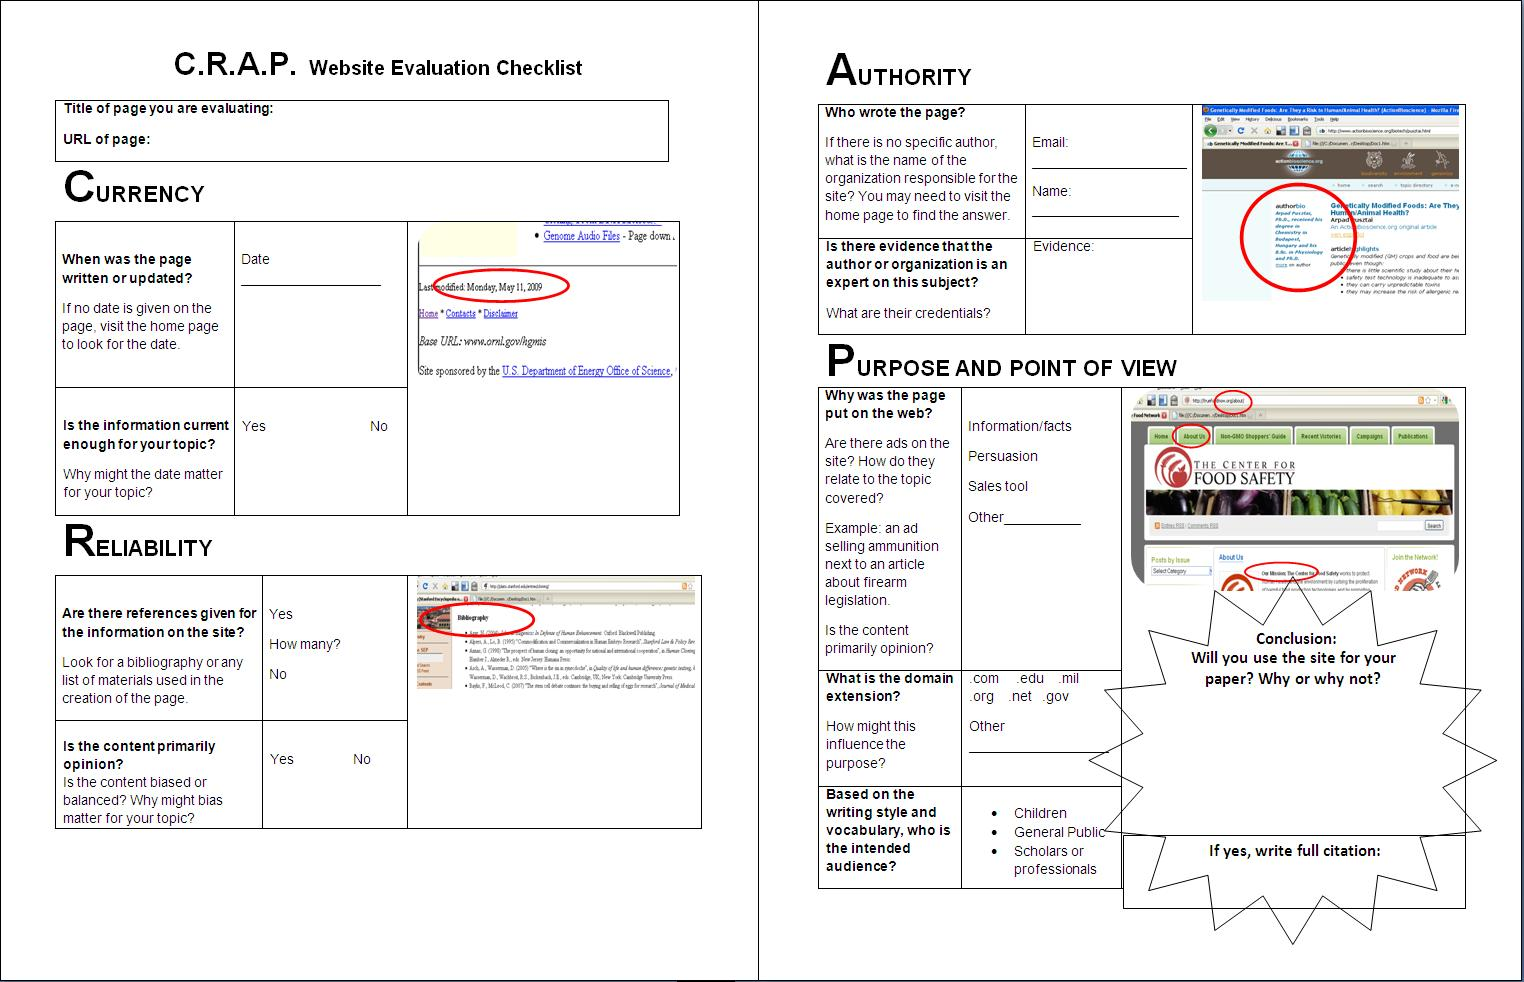 Worksheet C R A P Website Evaluation Checklist